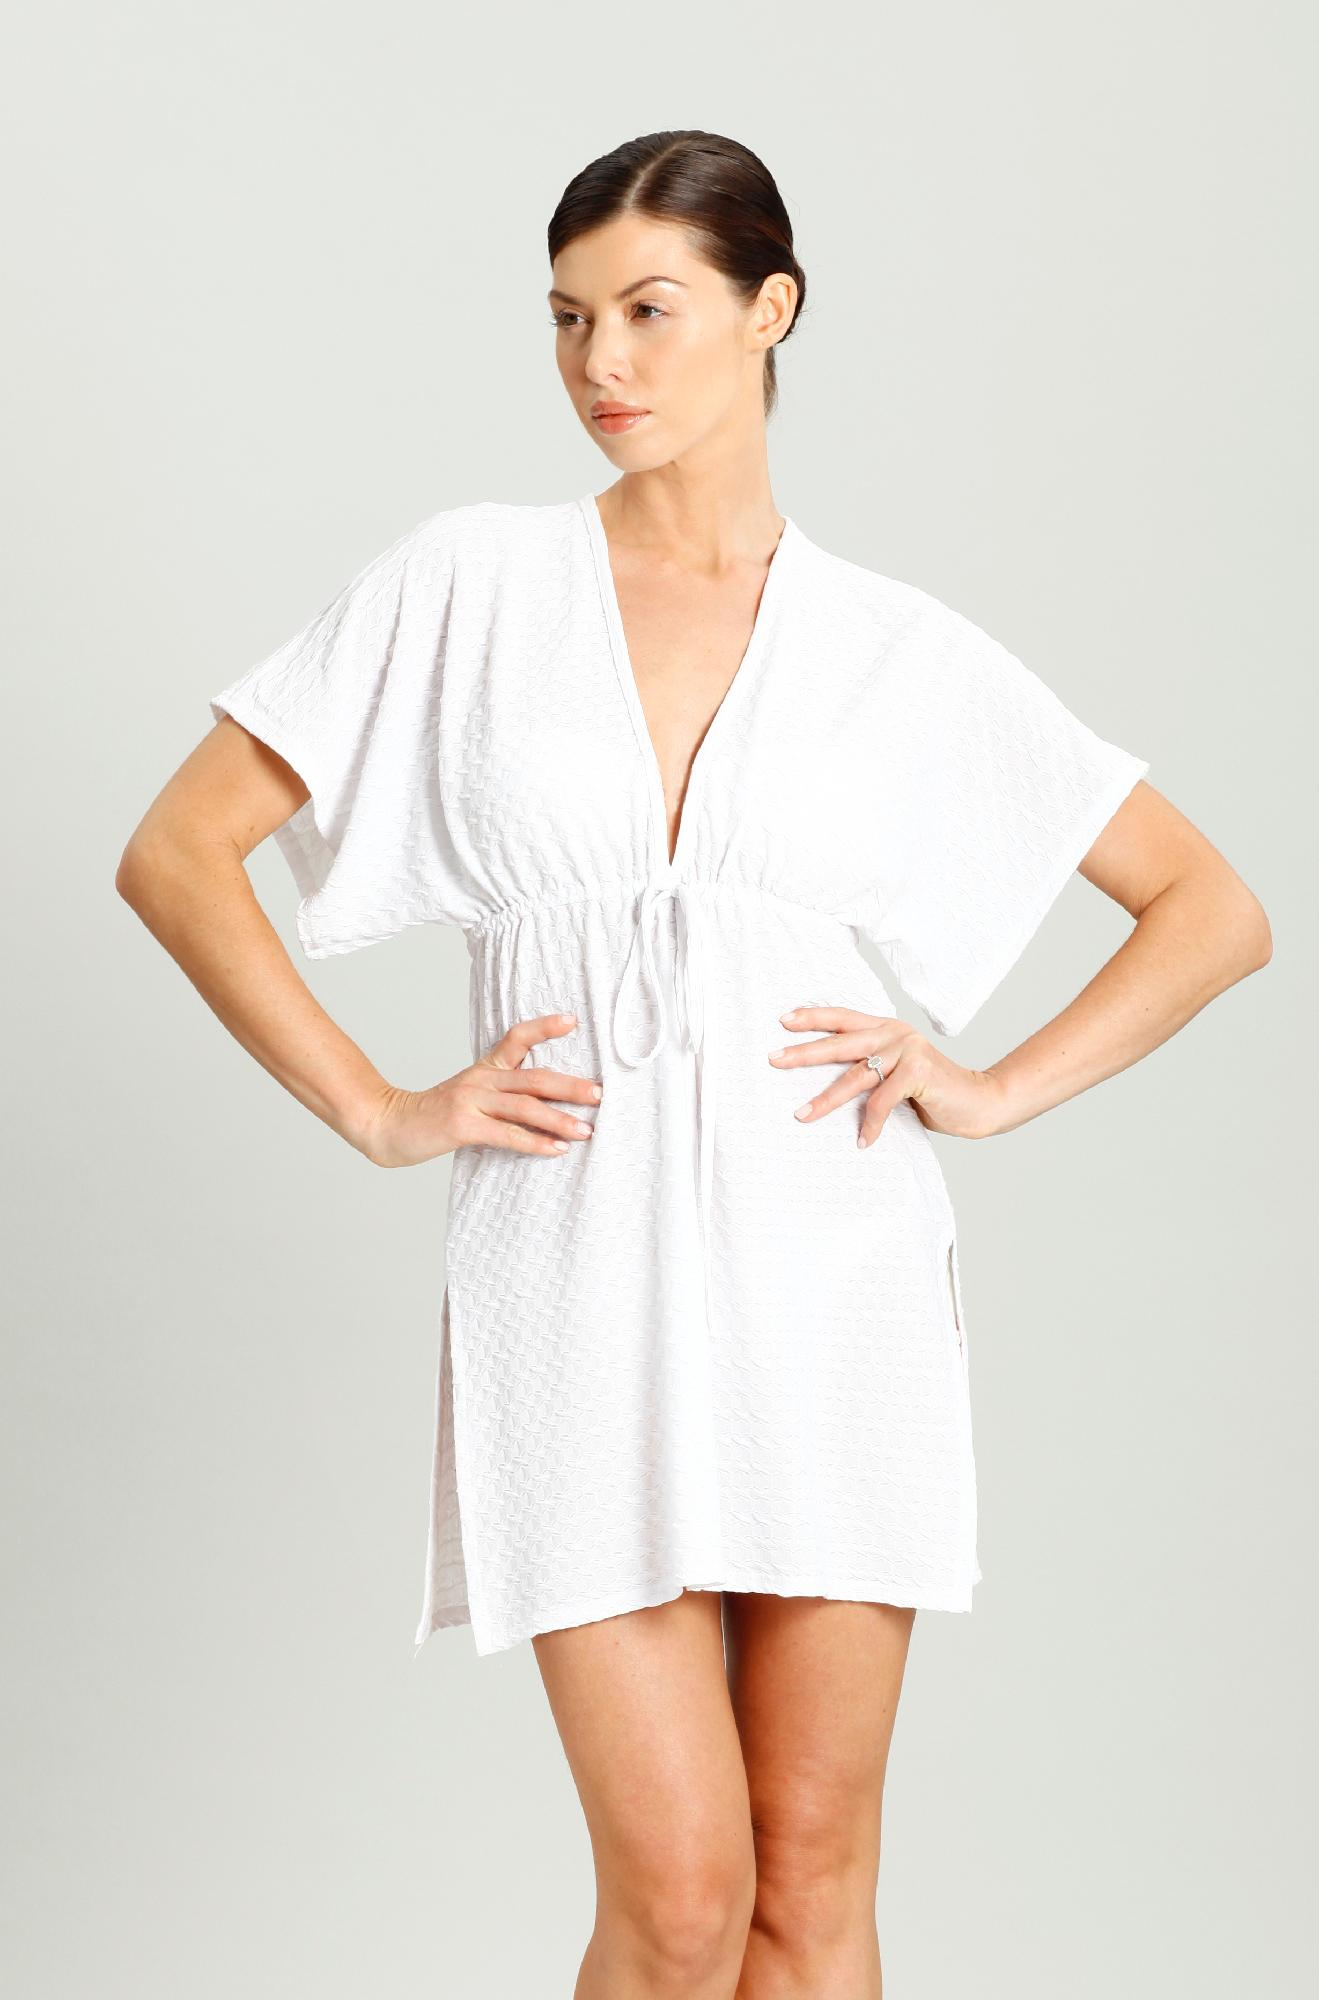 Jordan Taylor® Women's Plus V-neck Tunic Swim Cover-Up- Online Exclusive at Kmart.com